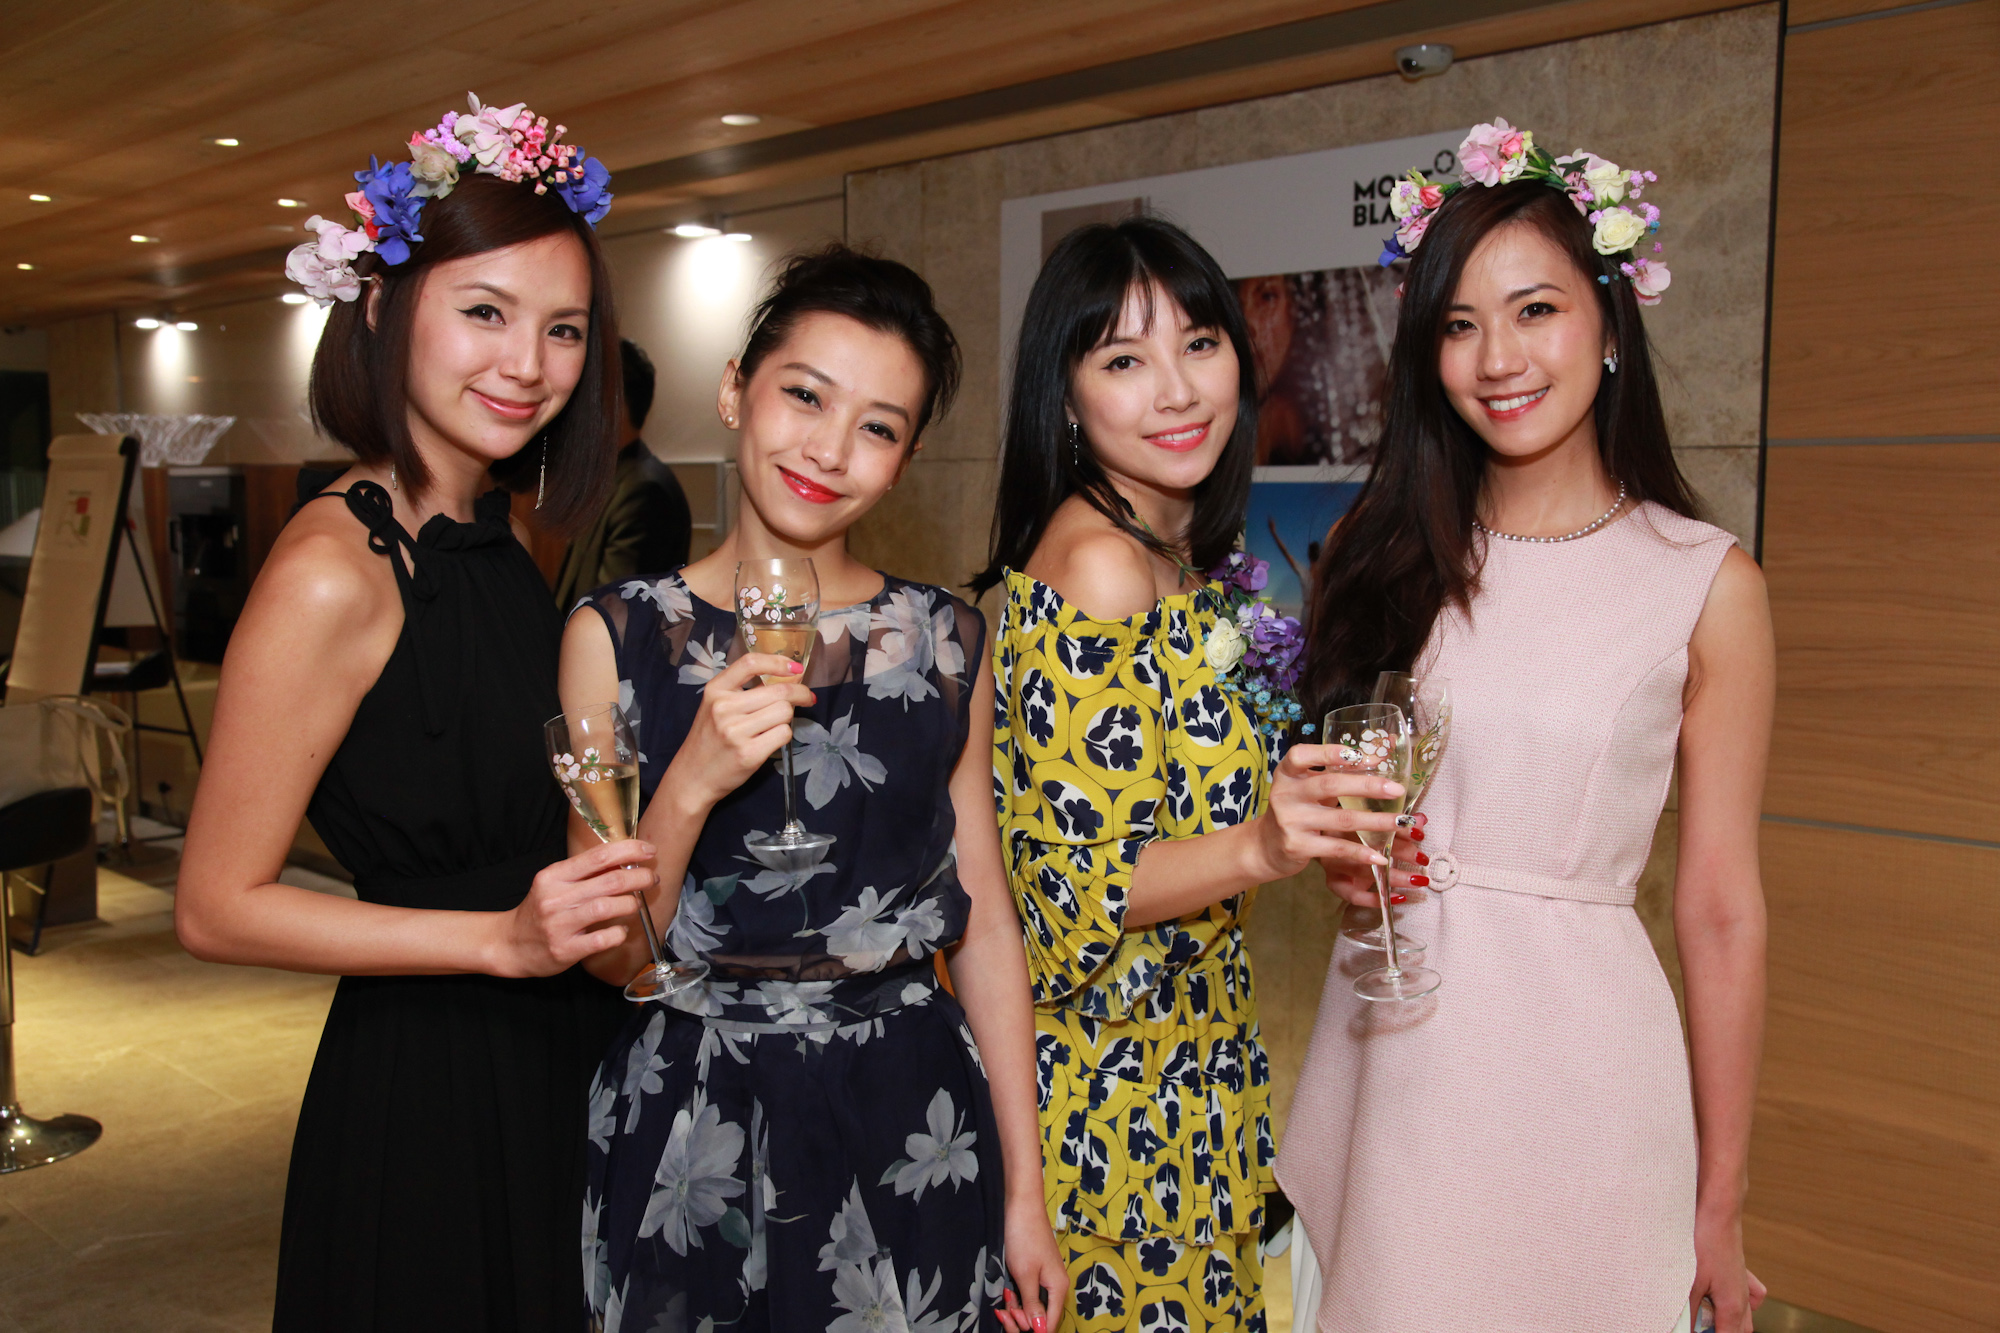 Gallery: Montblanc's 'The Bohème Way' cocktail party